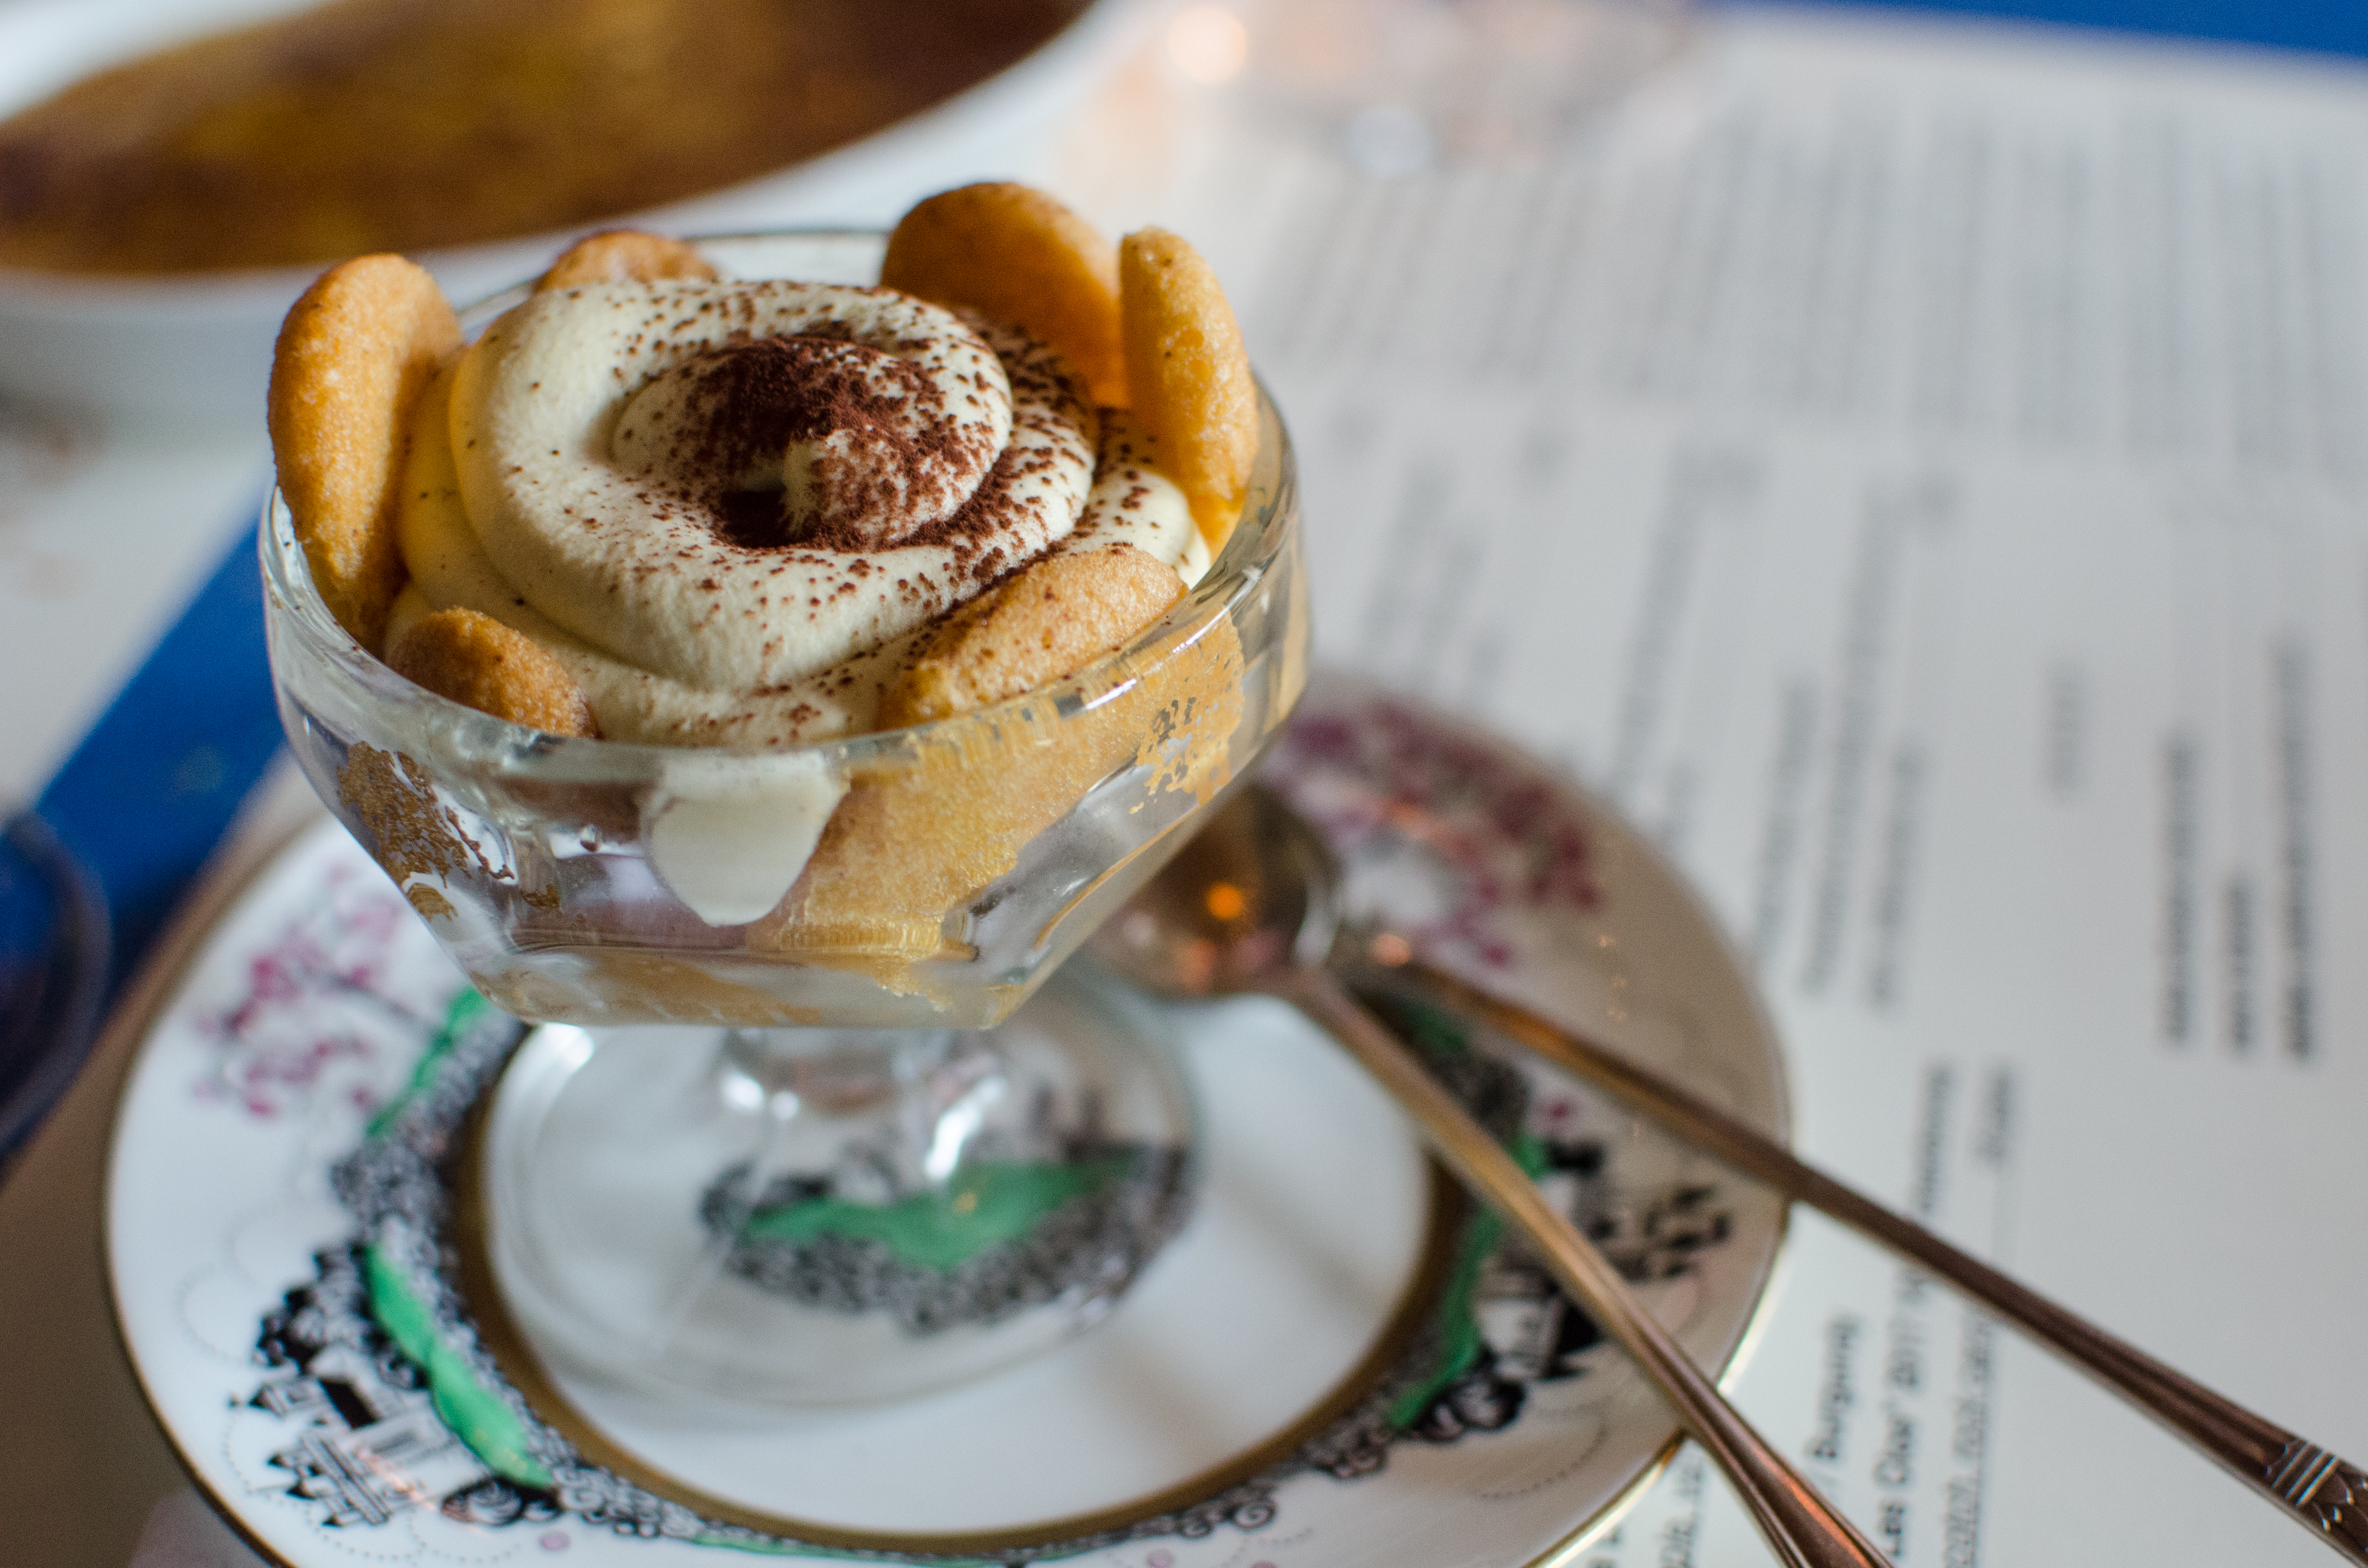 A swirl of tiramisu is in a glass stemmed bowl sitting on a decorative vintage plate. Two long spoons accompany it.